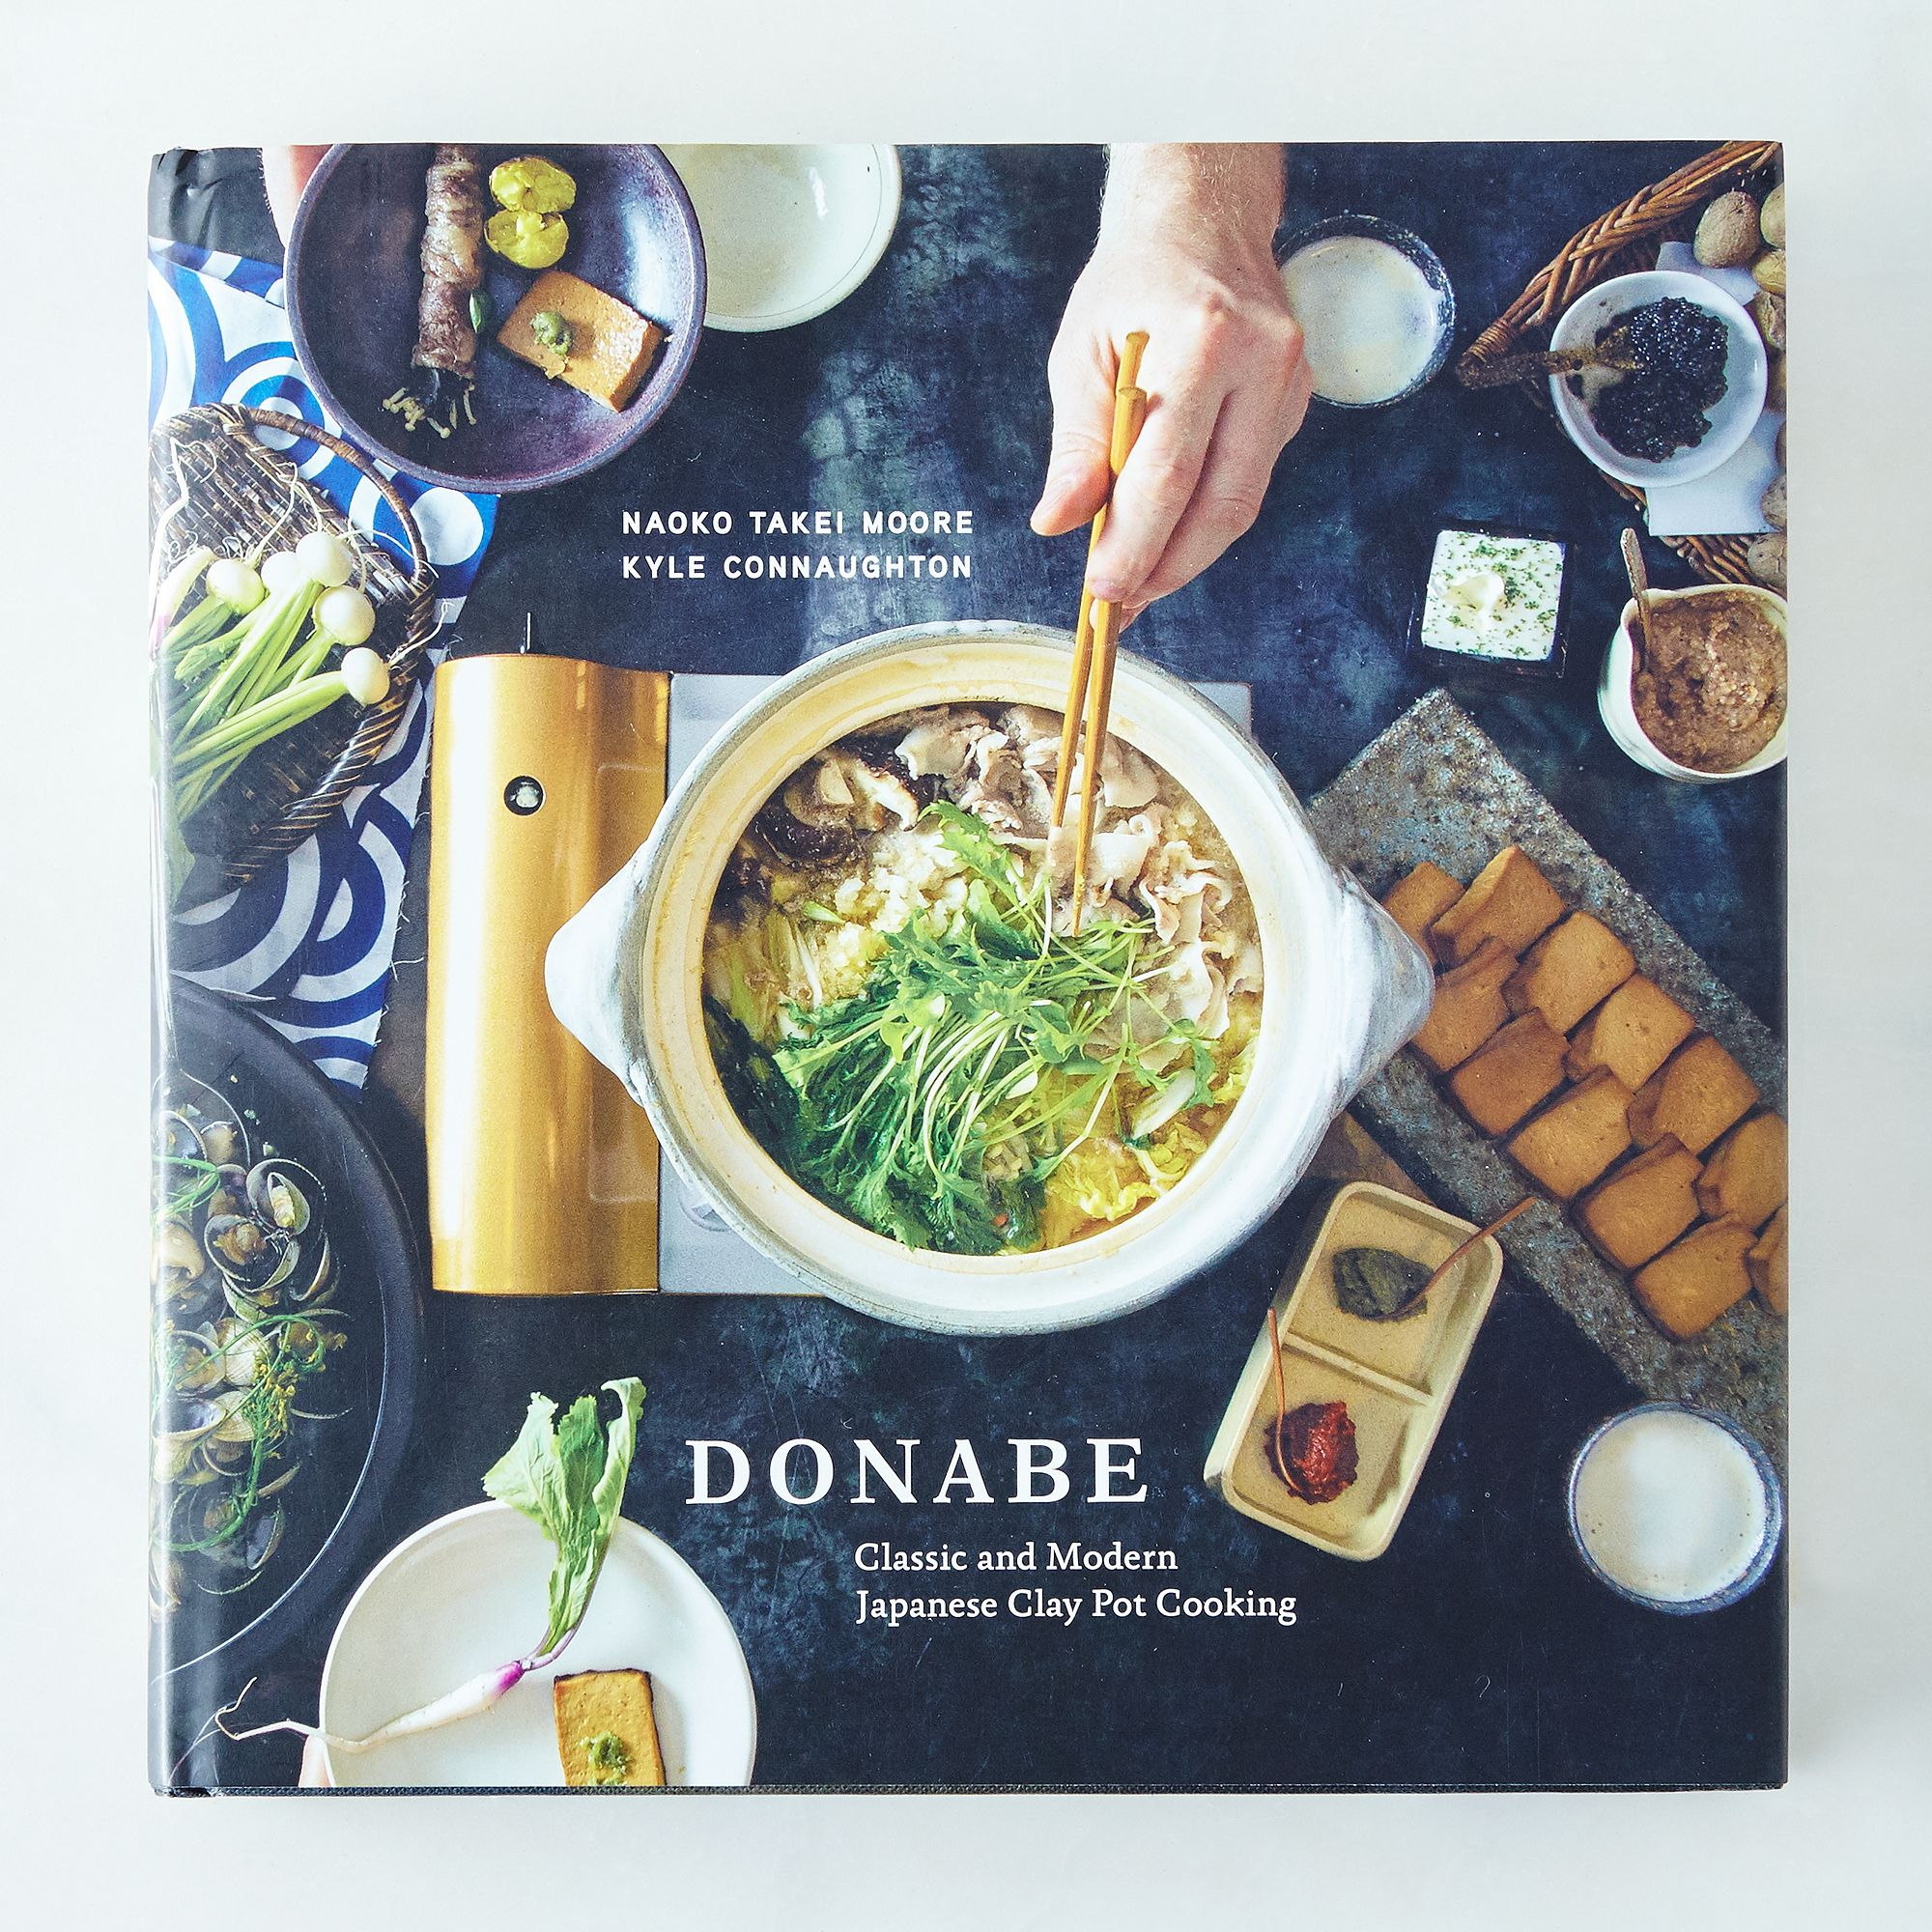 2017 will be the year for asian cookbooks donabe classic and modern japanese clay pot cooking sig forumfinder